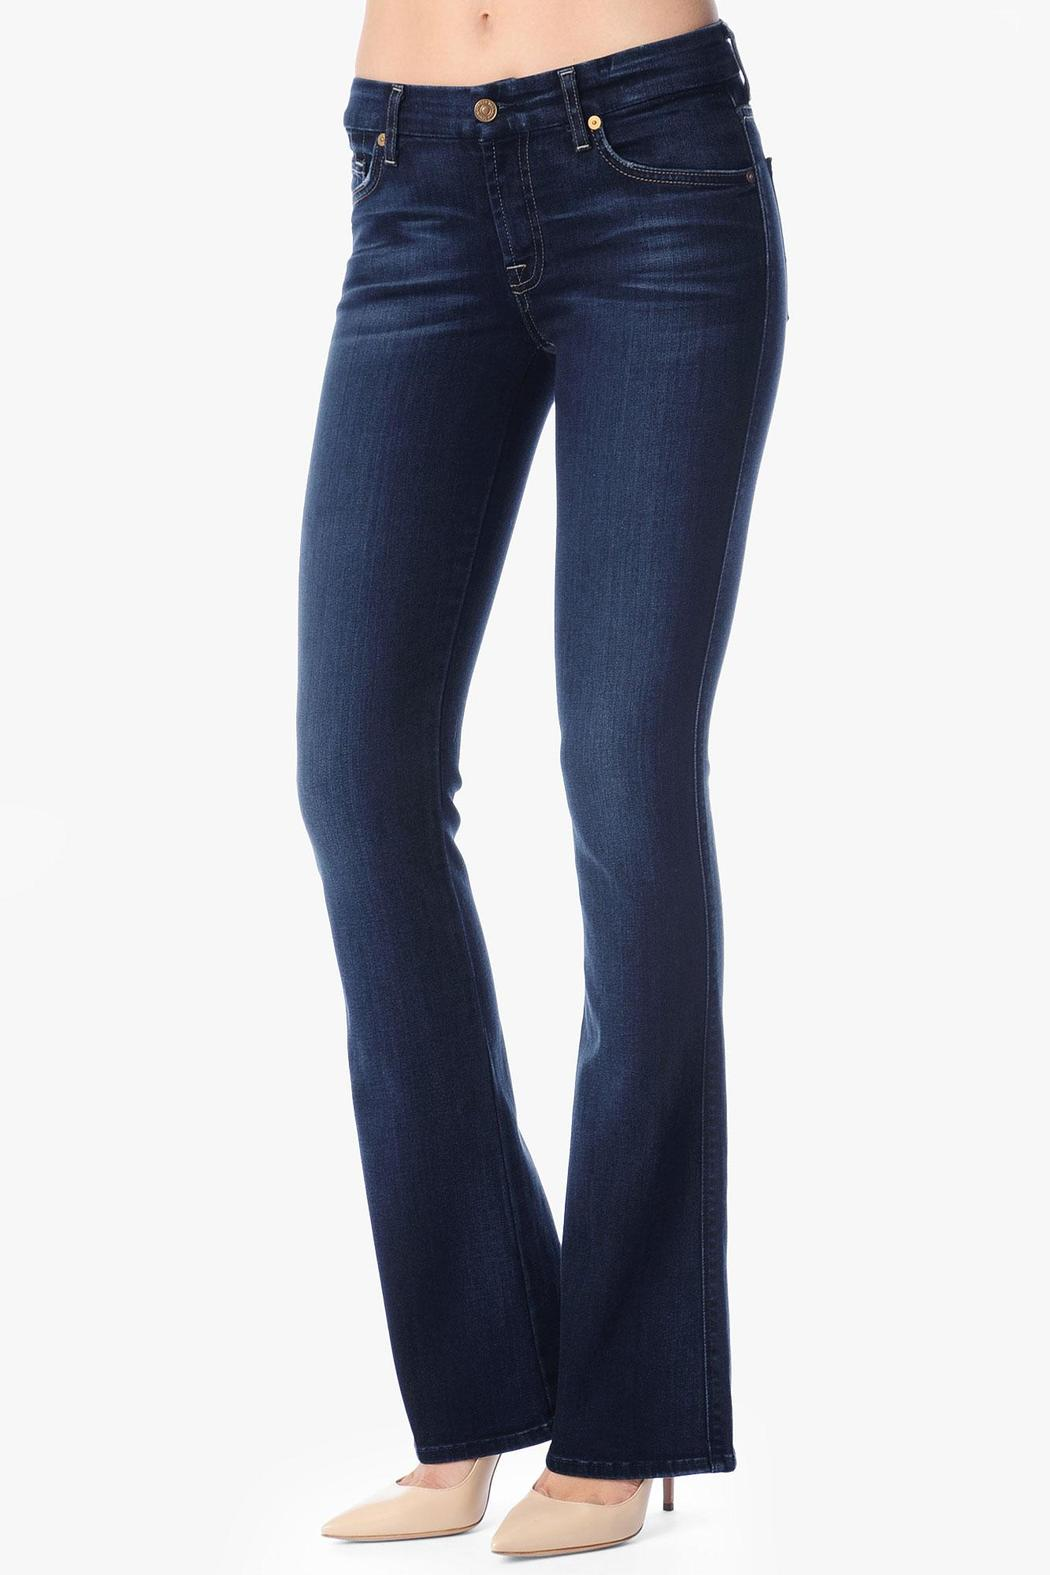 7 For all Mankind Kimmie Bootcut Merci-Blue - Main Image